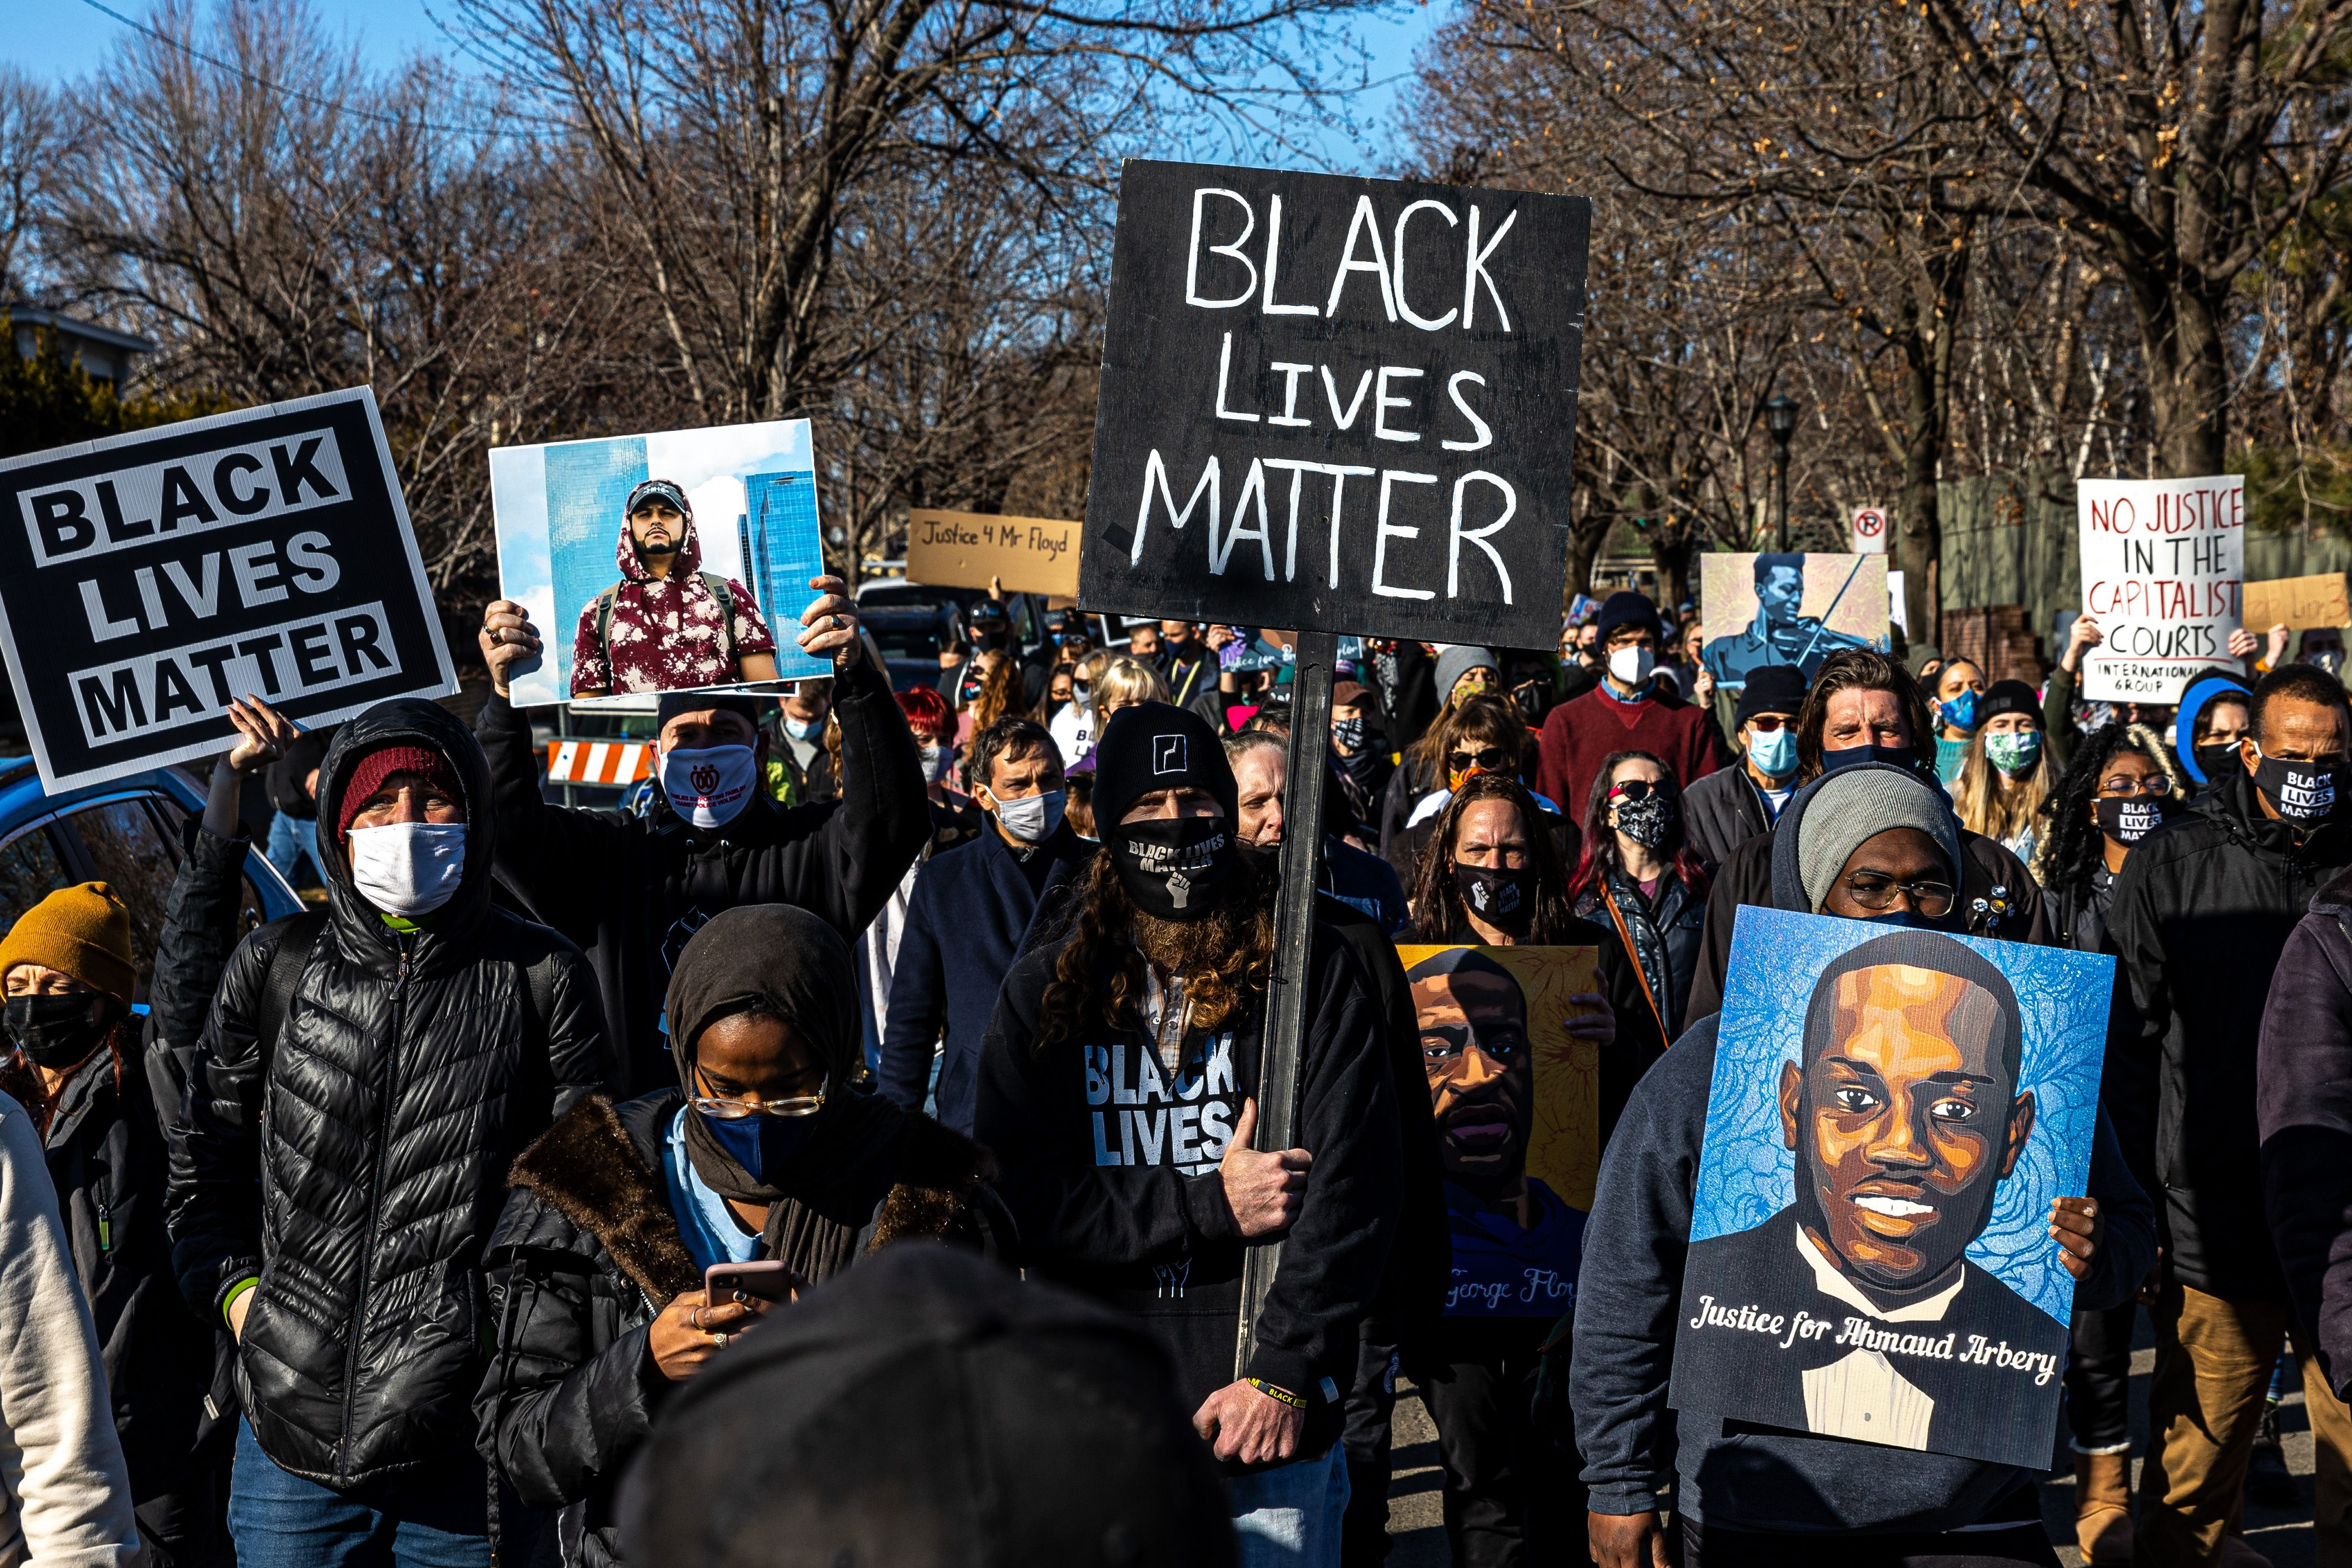 Demonstrators march while holding placards during a protest in St.Paul, Minnesota, on March 6